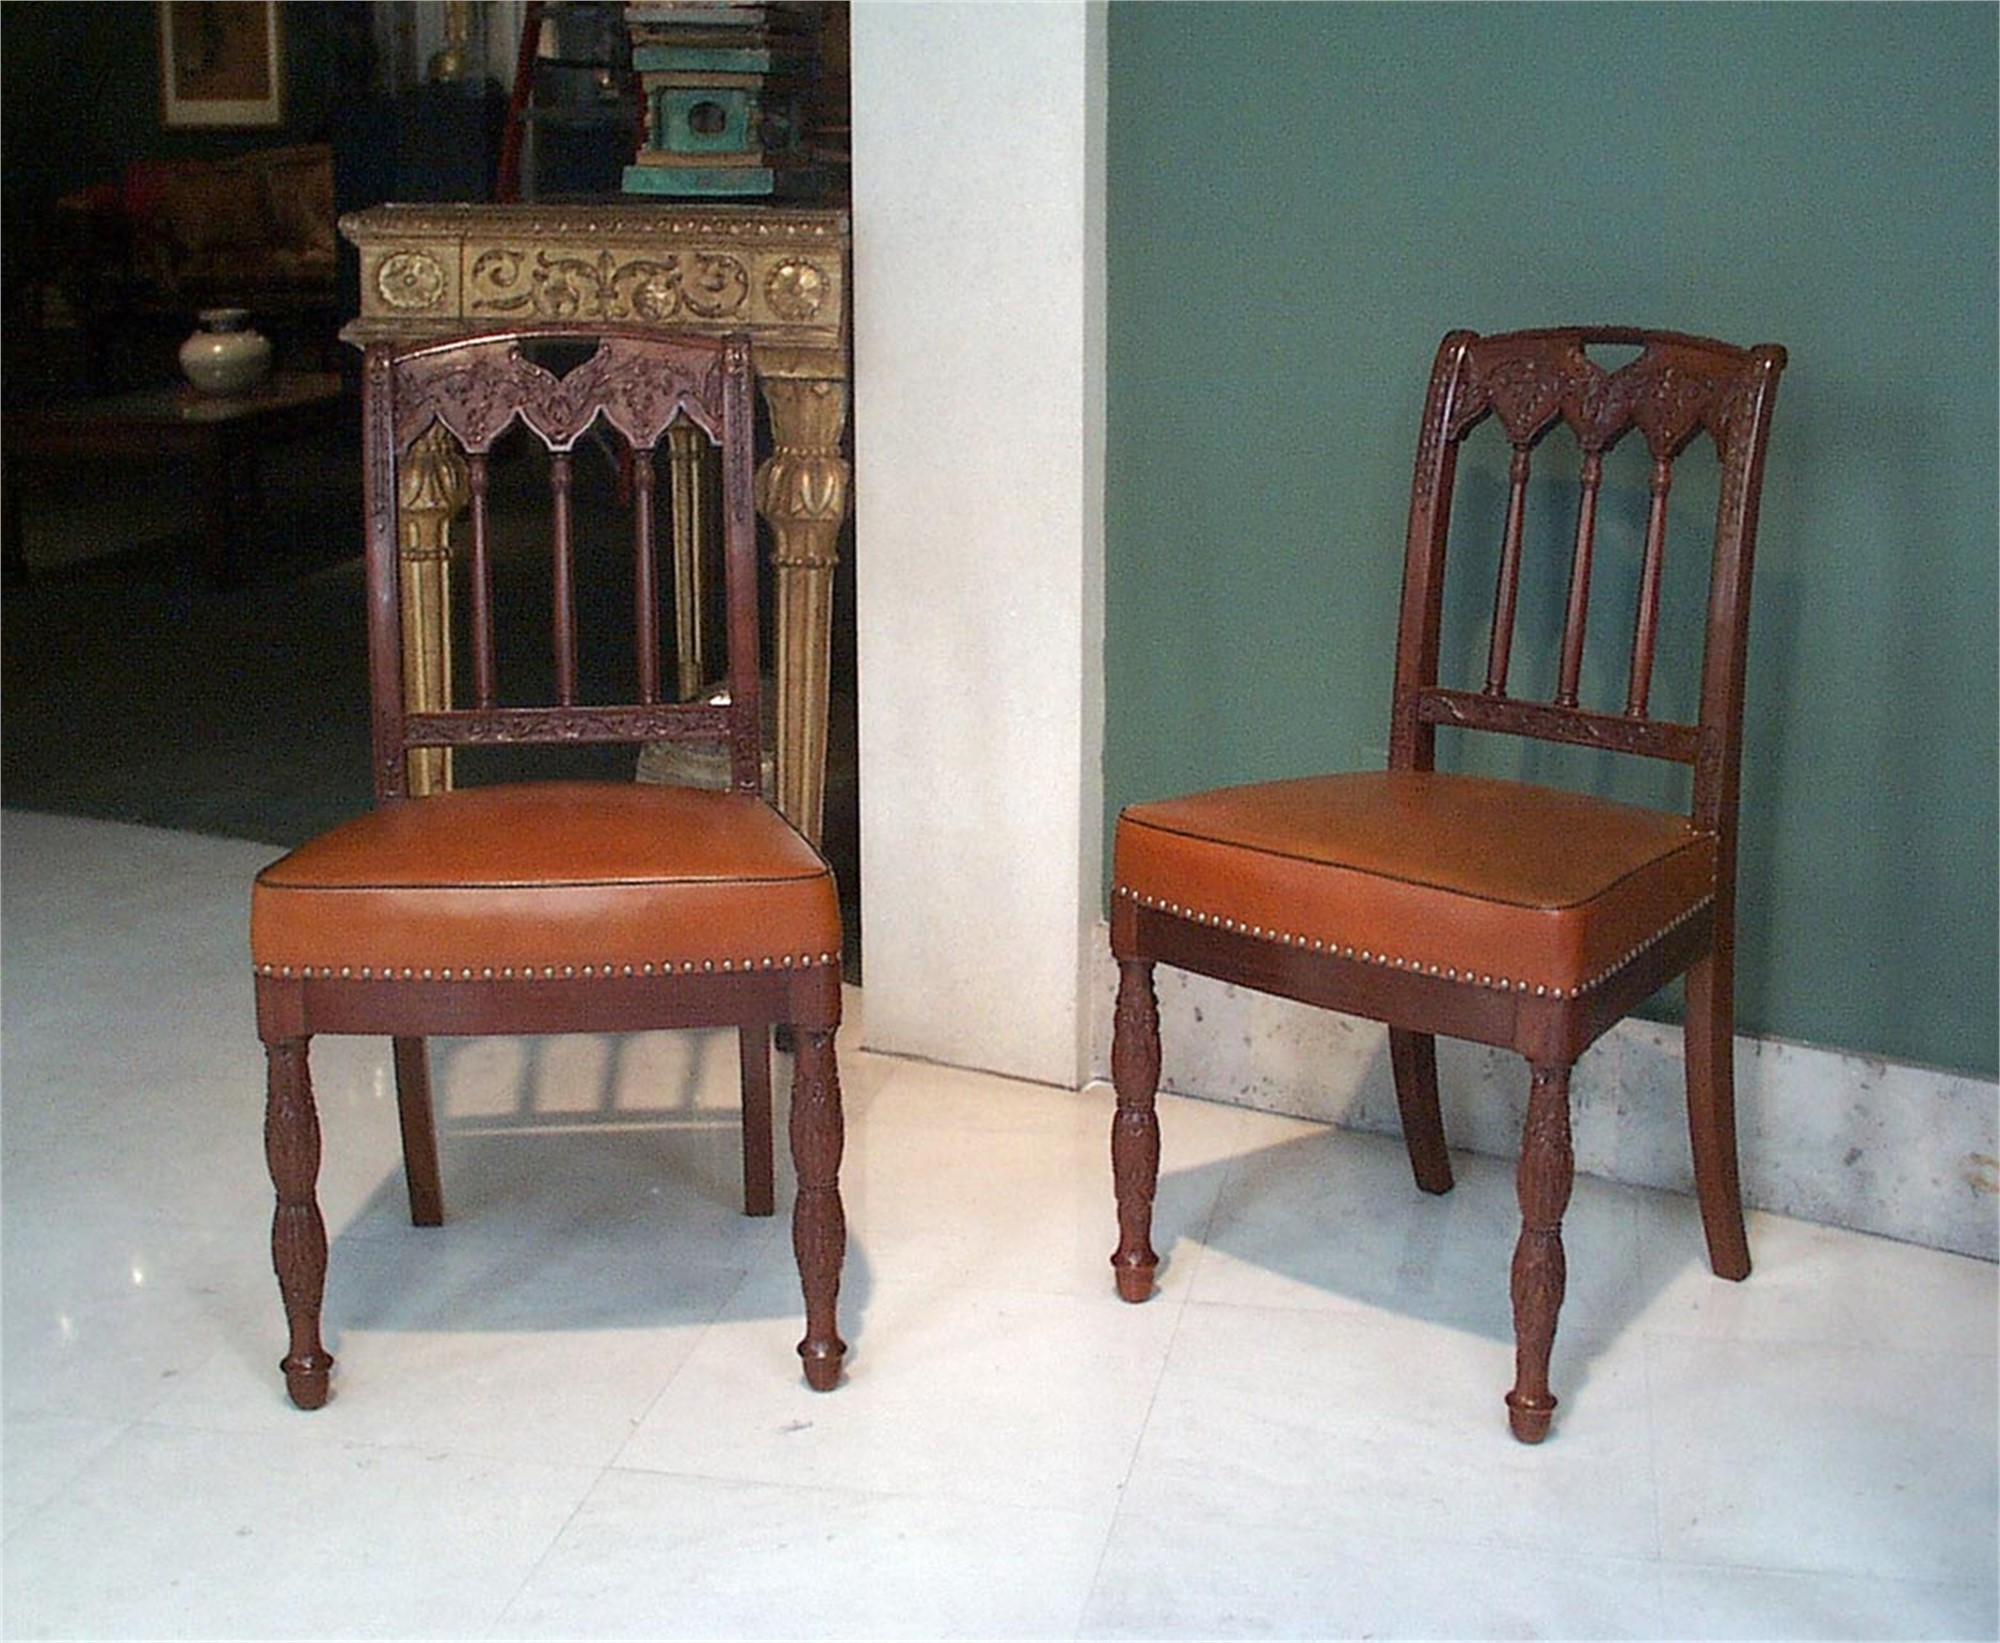 SET OF FIVE MAHOGANY CHAIRS by Louis Bellange